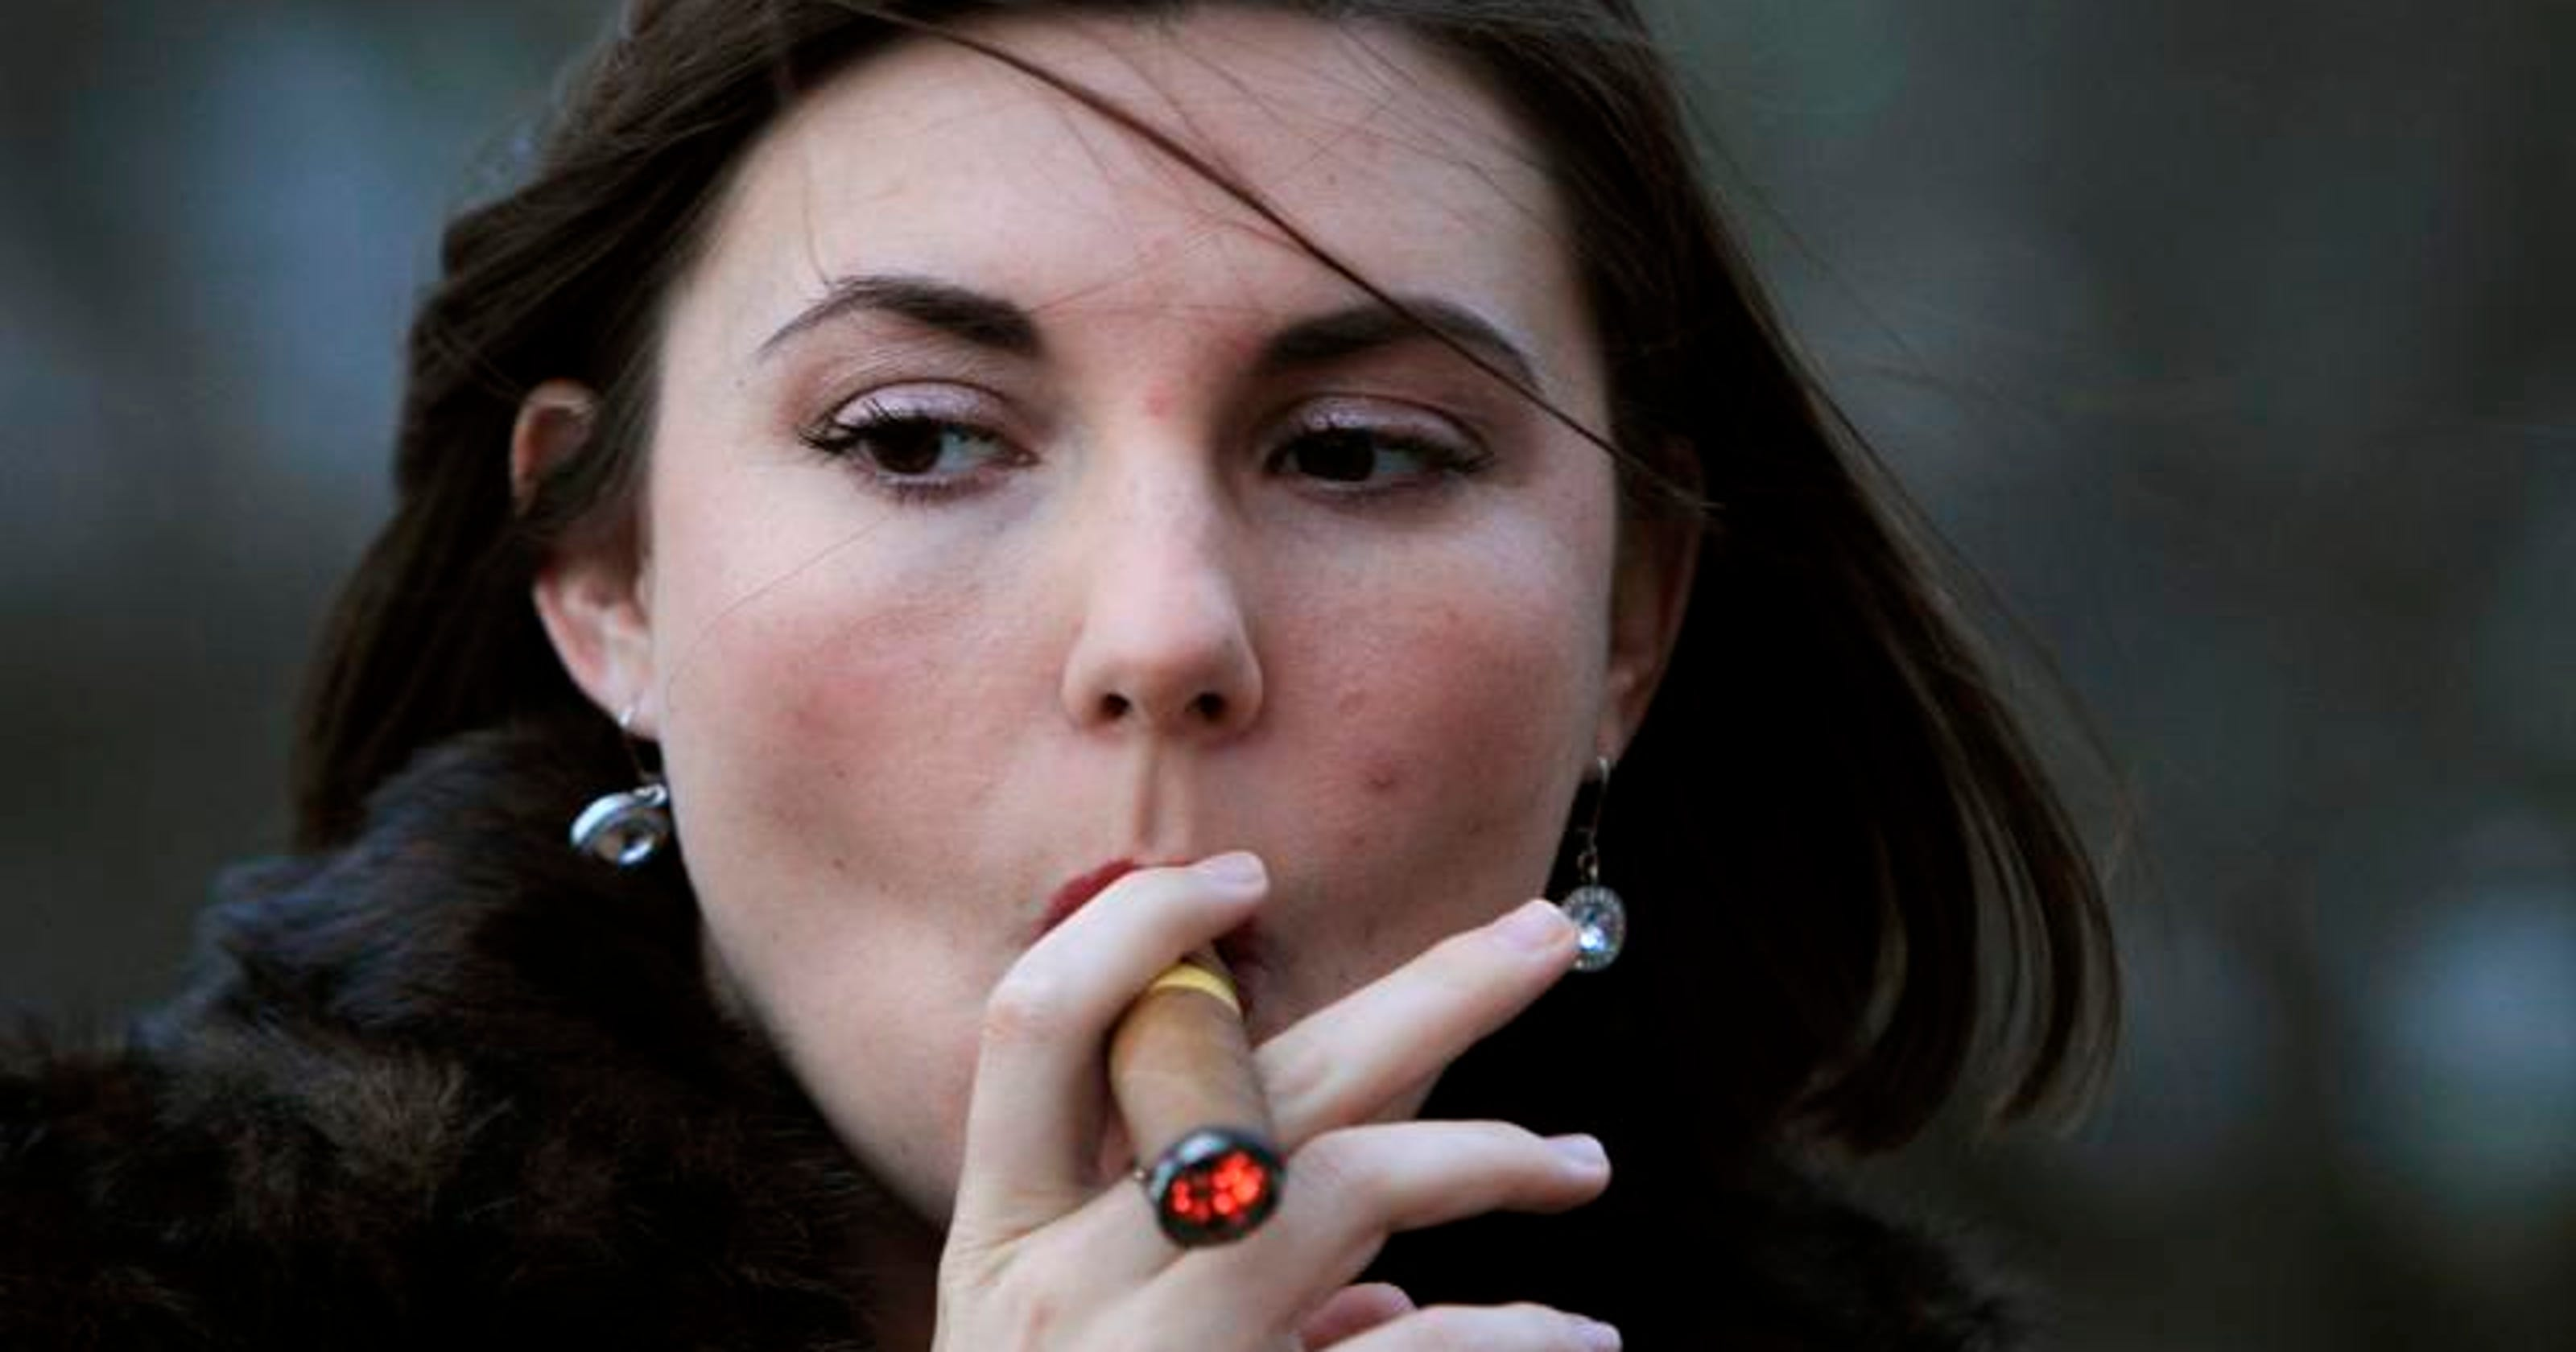 More Women Are Smoking Cigars But Feminized Flavors Can Come With